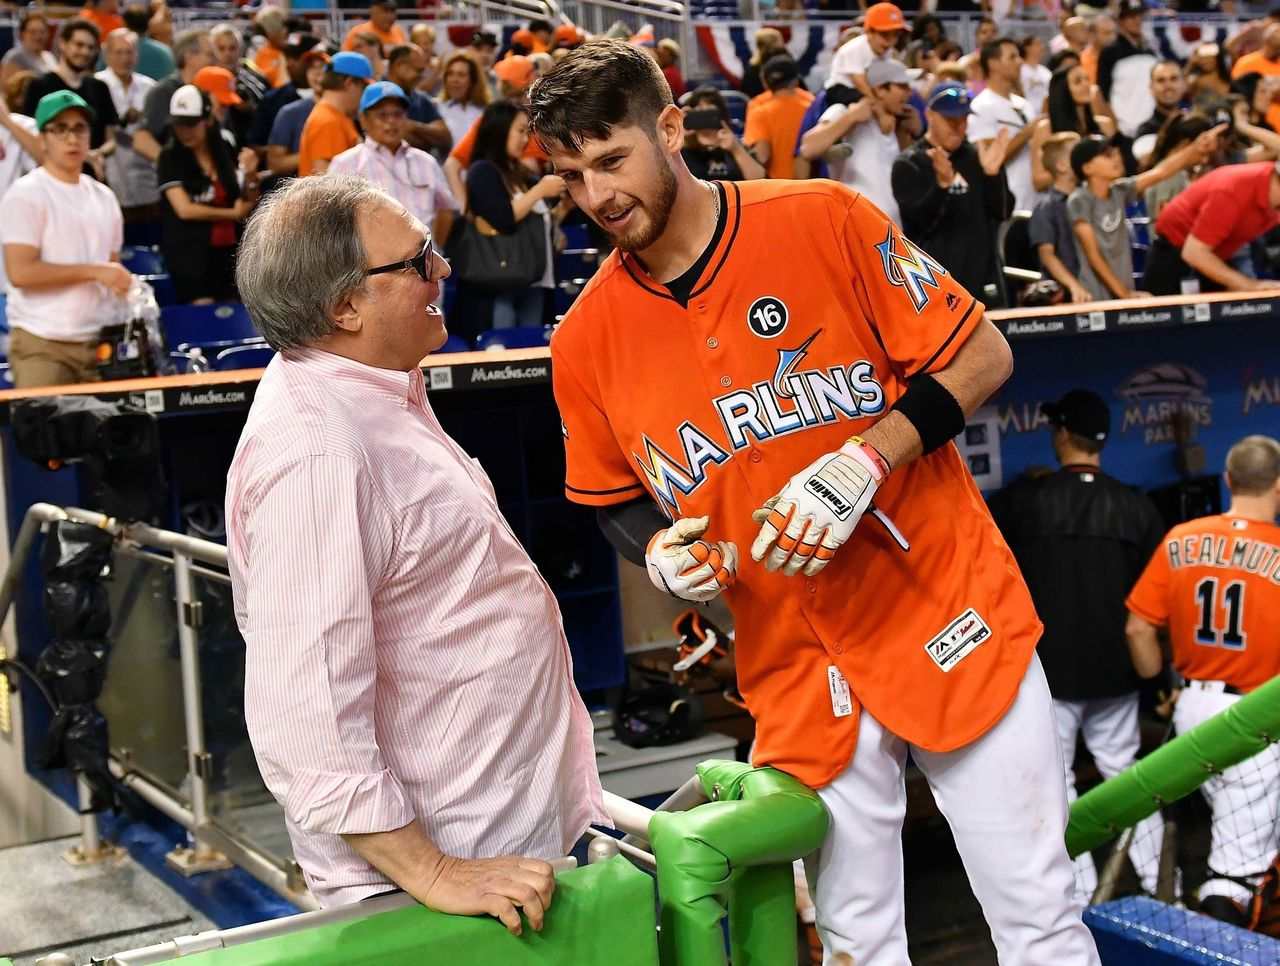 Cropped 2017 04 16t215029z 249252558 nocid rtrmadp 3 mlb new york mets at miami marlins